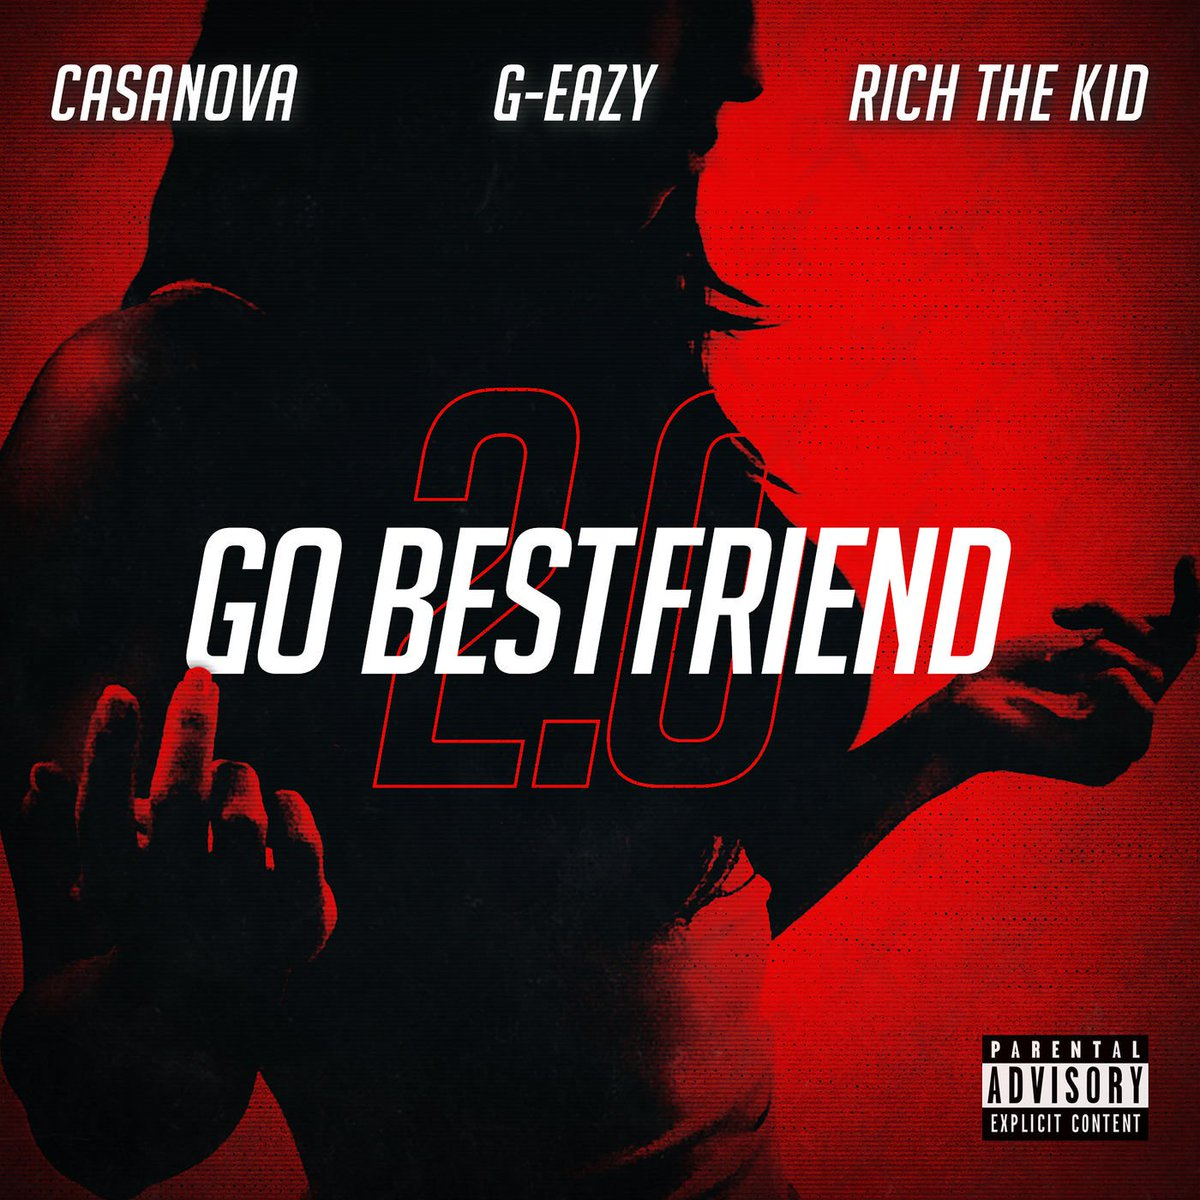 Listen: Casanova Feat. G-Eazy & Rich the Kid 'Go BestFriend 2.0' https://t.co/WK1neXlJij  https://t.co/xQtnfxxdOH